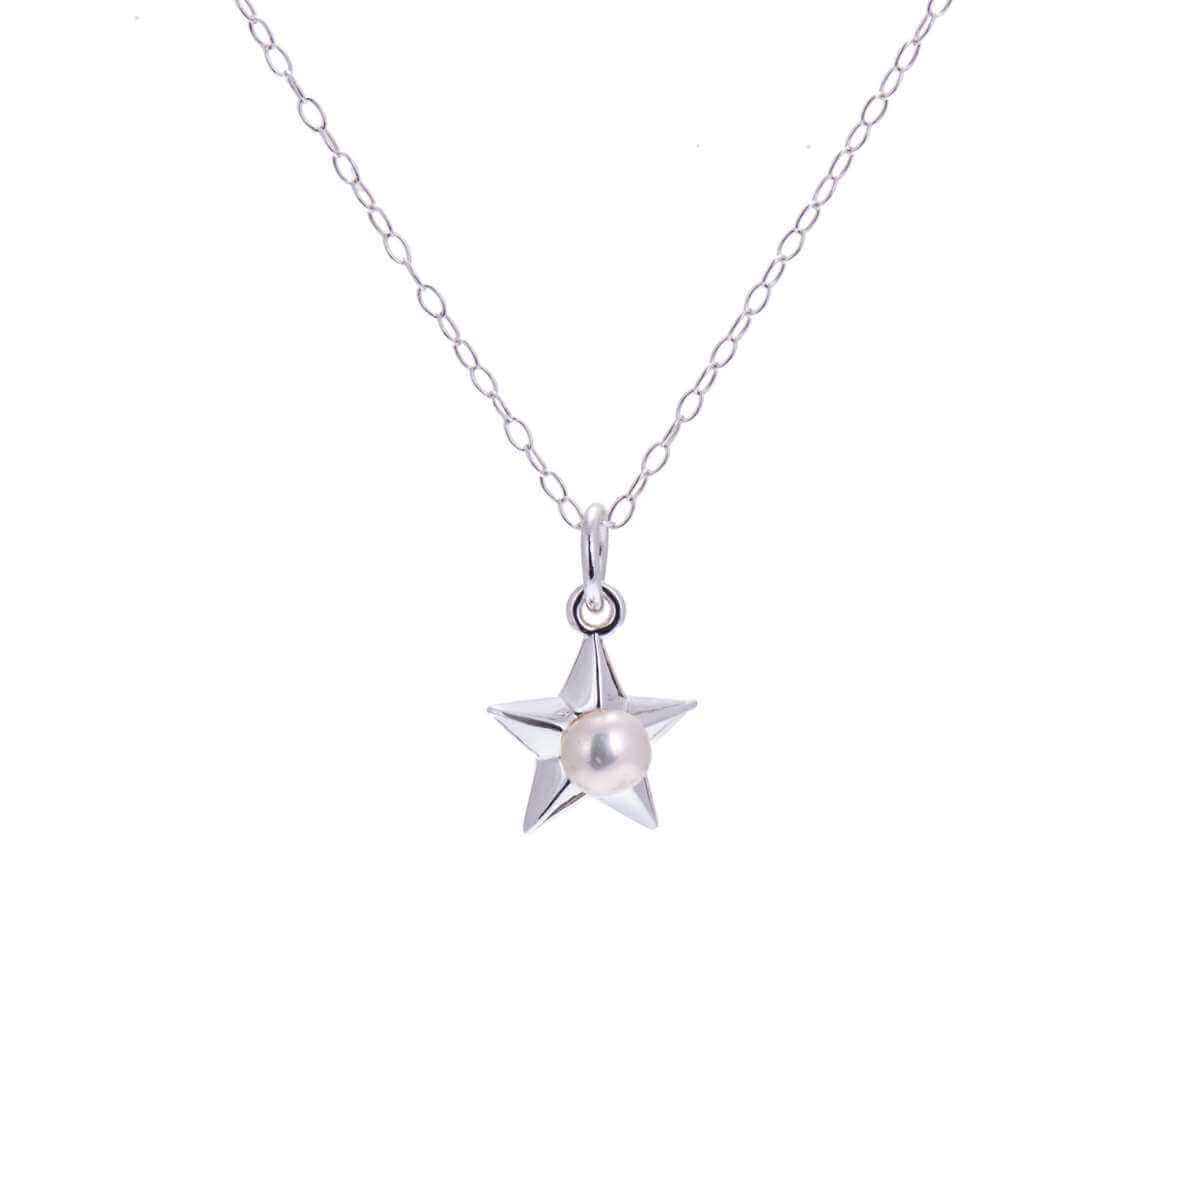 Sterling Silver Pearl Star Necklace - 14 - 22 Inches